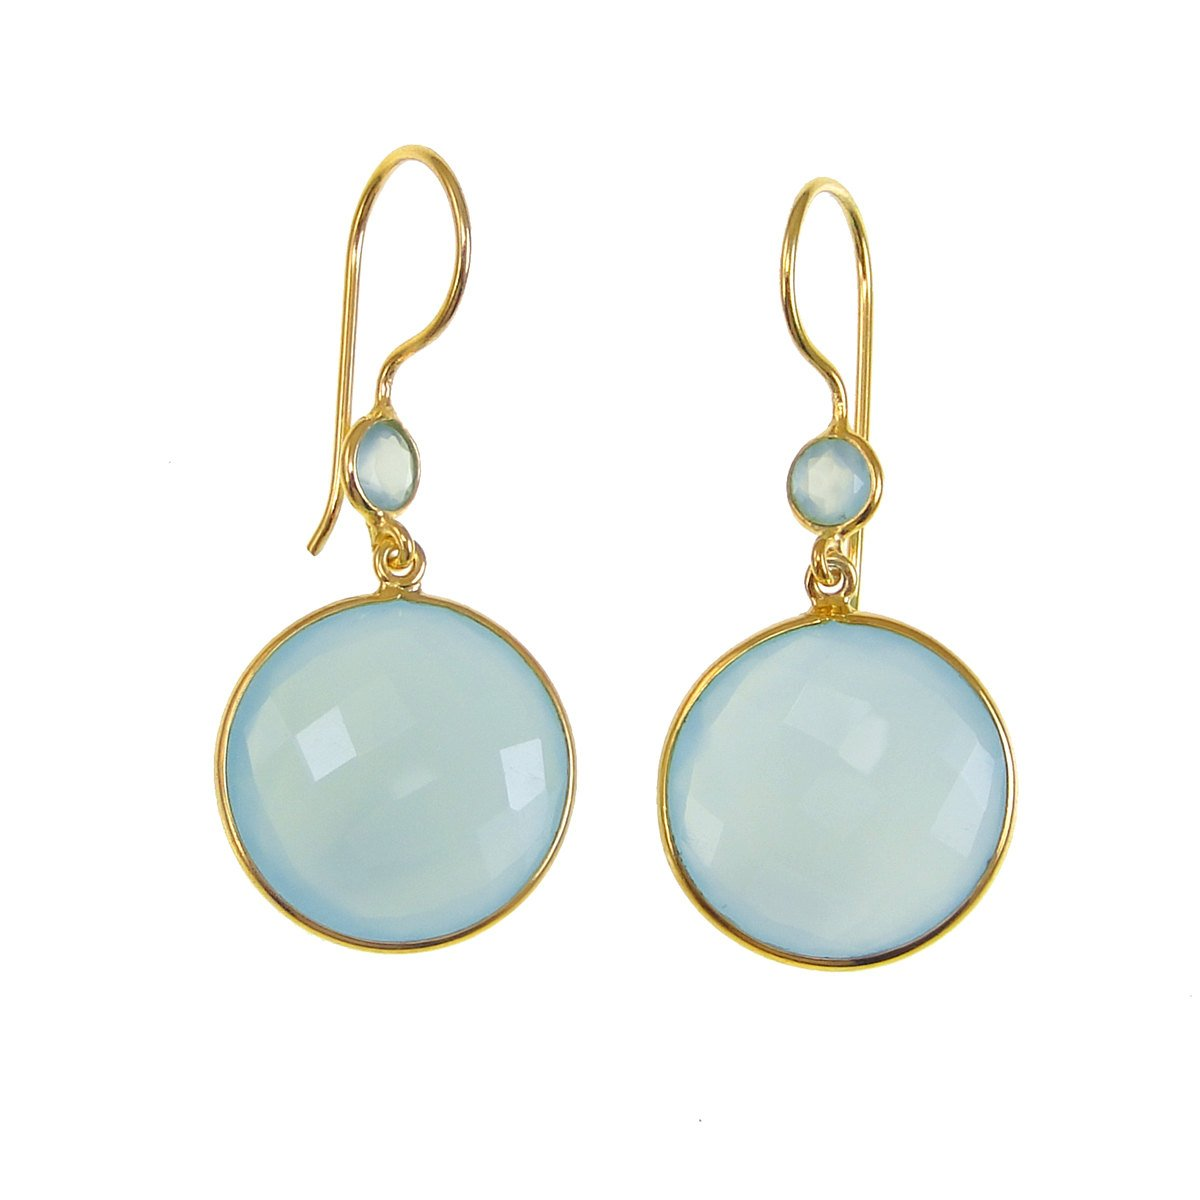 Green Aqua Seafoam Chalcedony Earrings - Gemstone Gold Dangle Drop Earrings